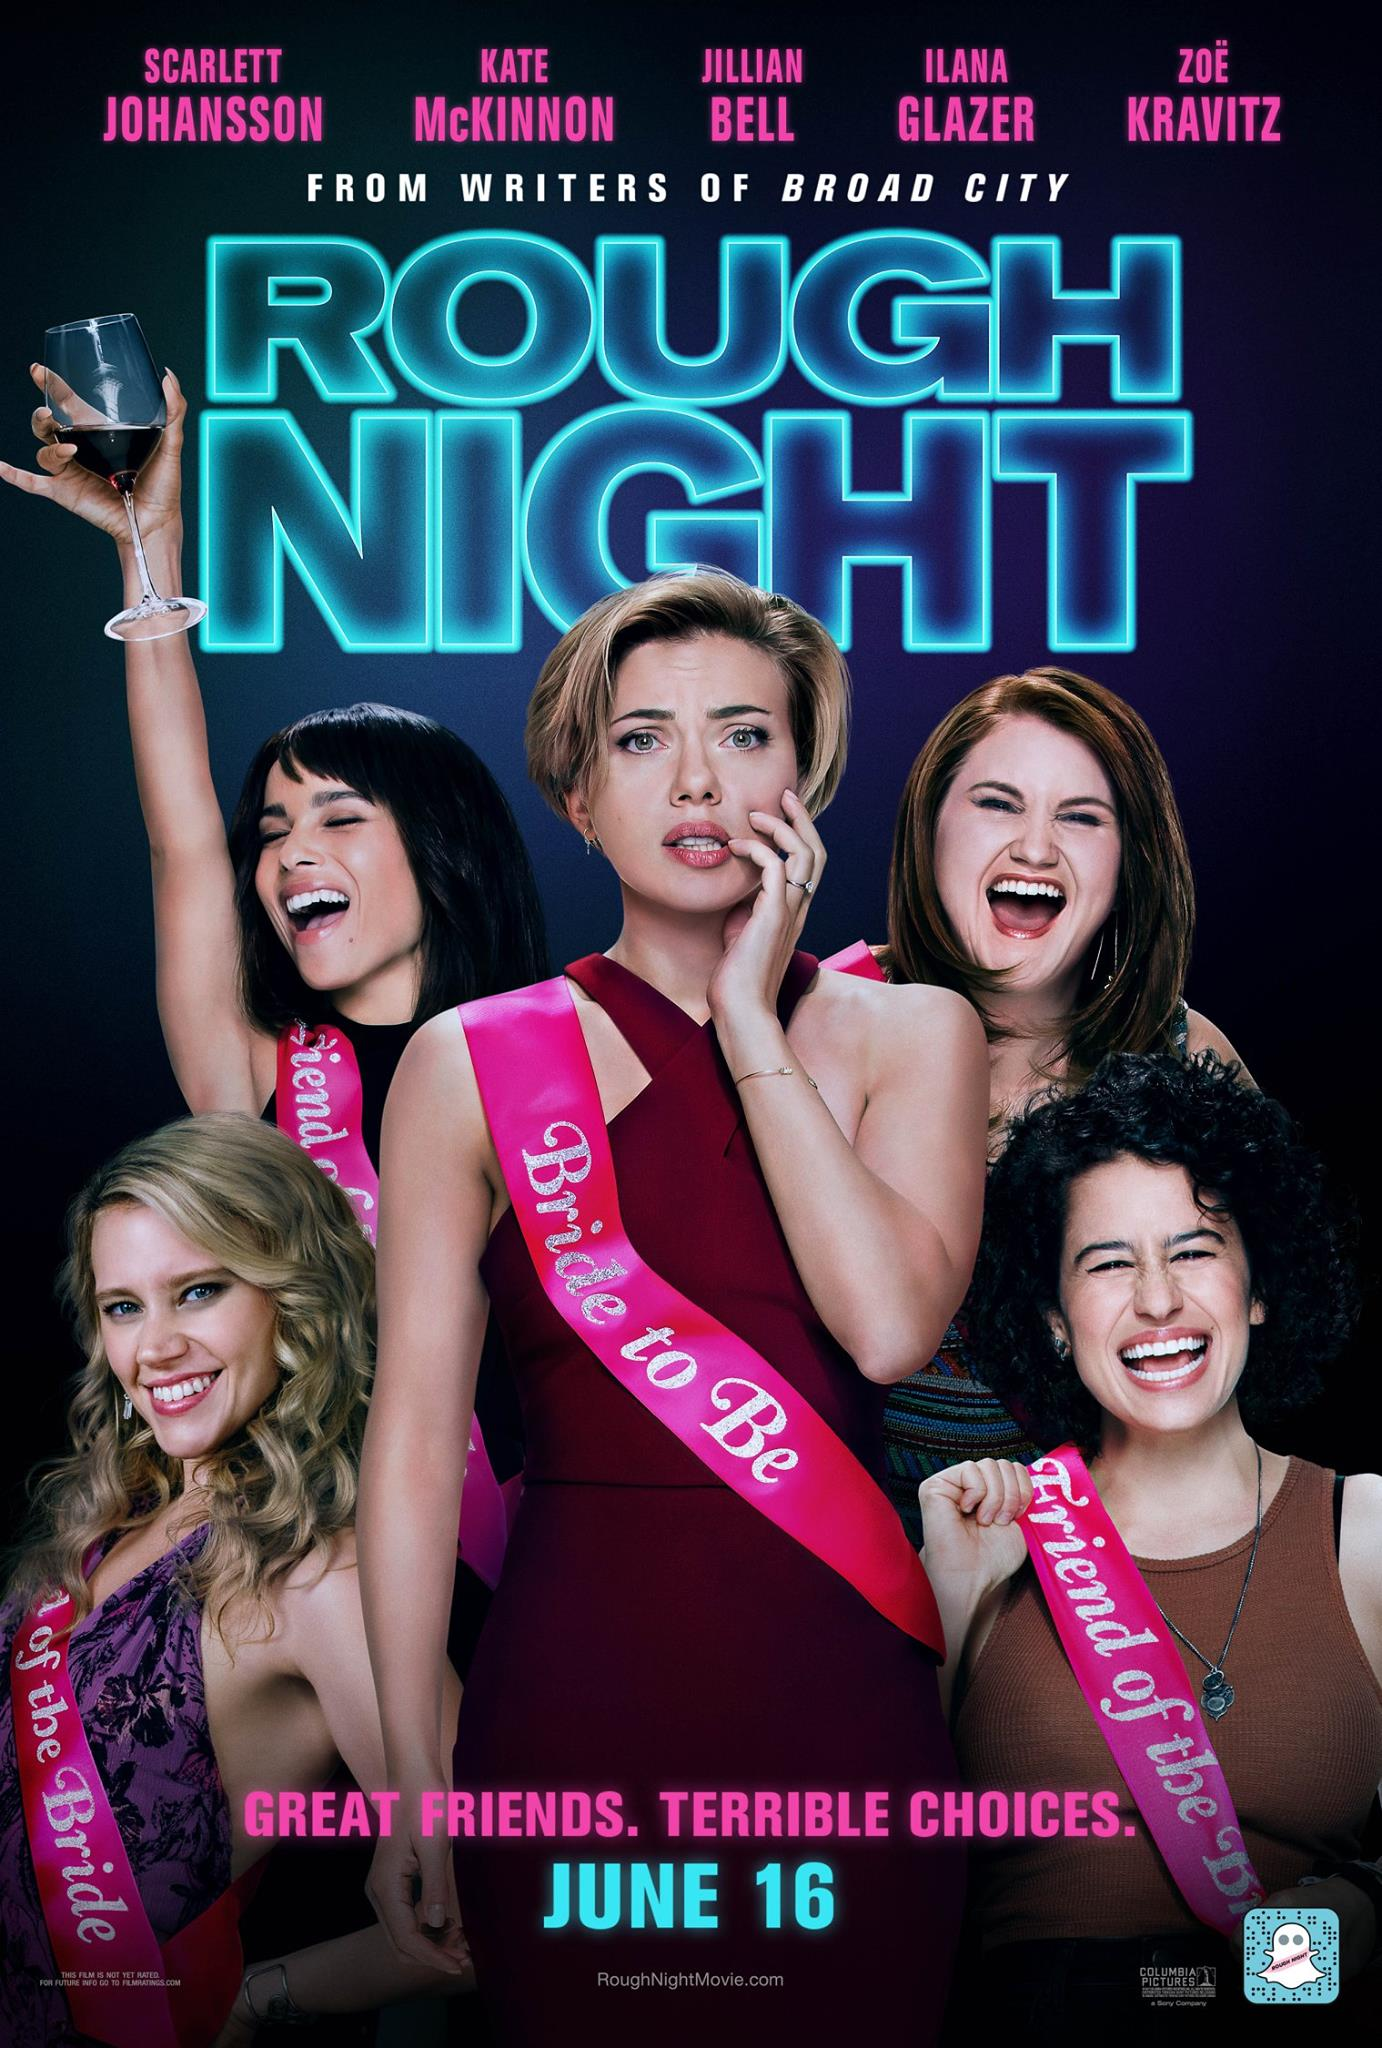 'Rough Night' delivers women-centric, sex positive comedy